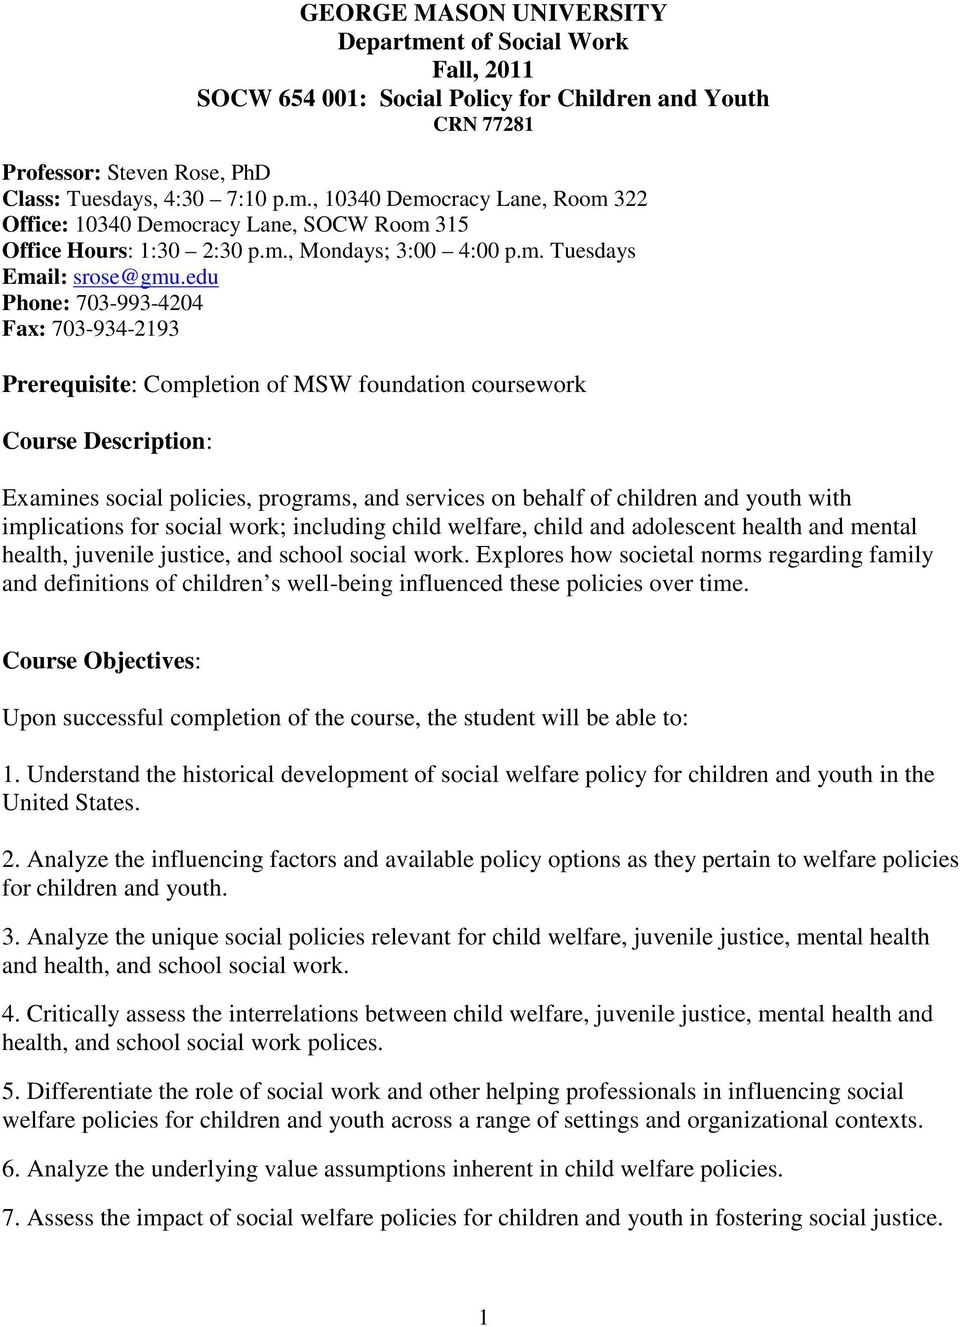 edu Phone: 703-993-4204 Fax: 703-934-2193 Prerequisite: Completion of MSW foundation coursework Course Description: Examines social policies, programs, and services on behalf of children and youth